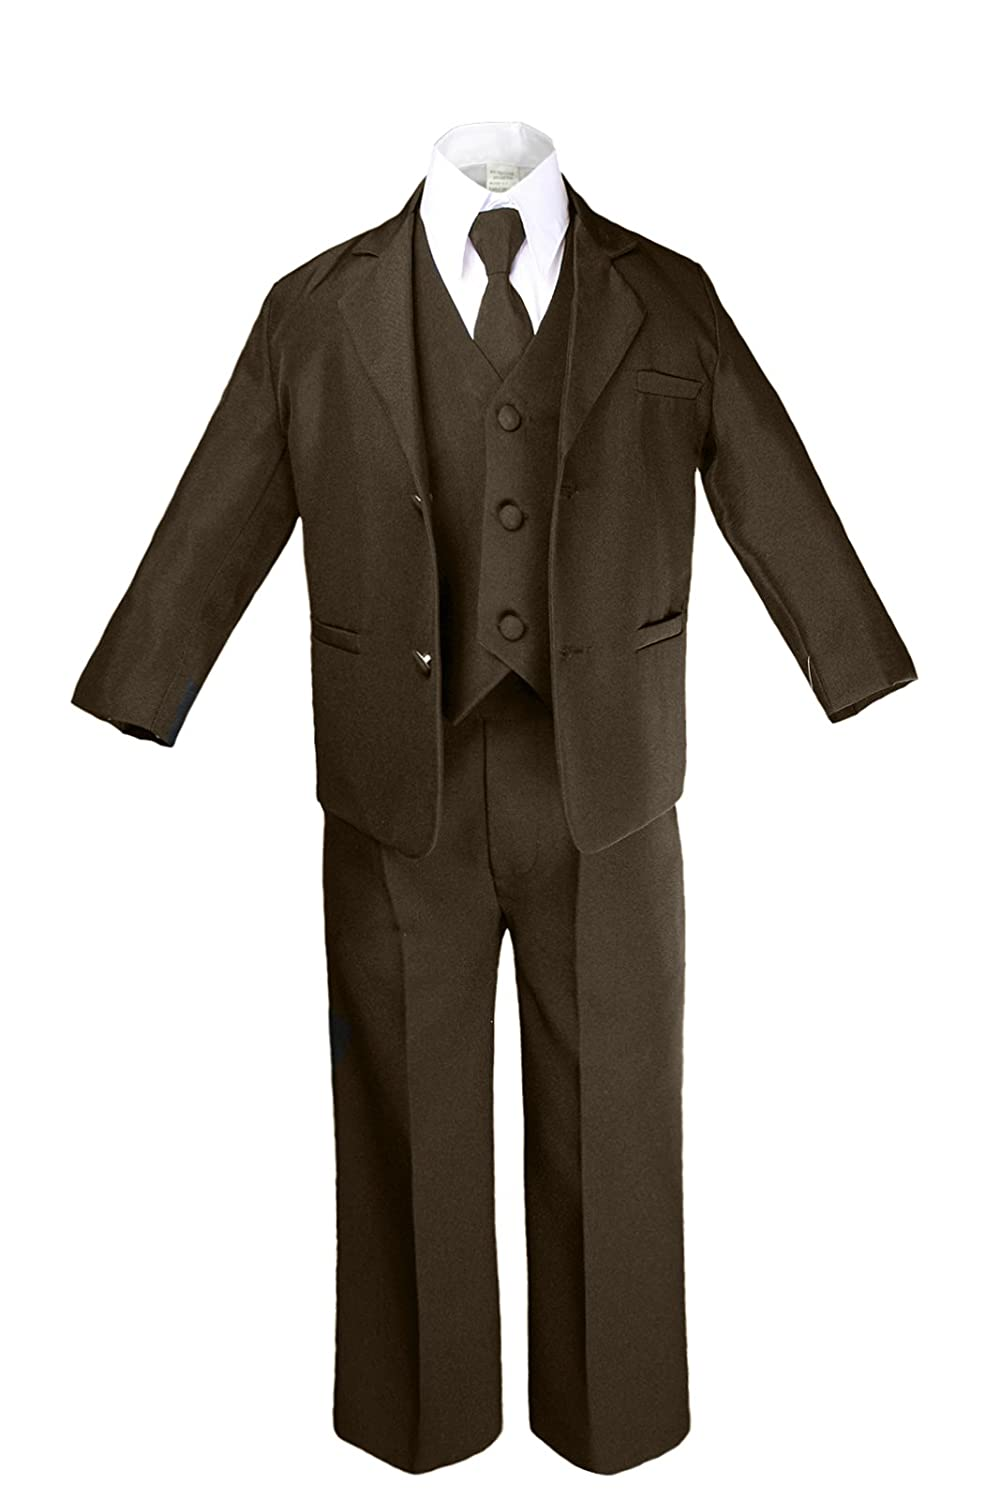 Unotux 7pc Boys Brown Suits with Satin Yellow Vest Necktie Sets All Size